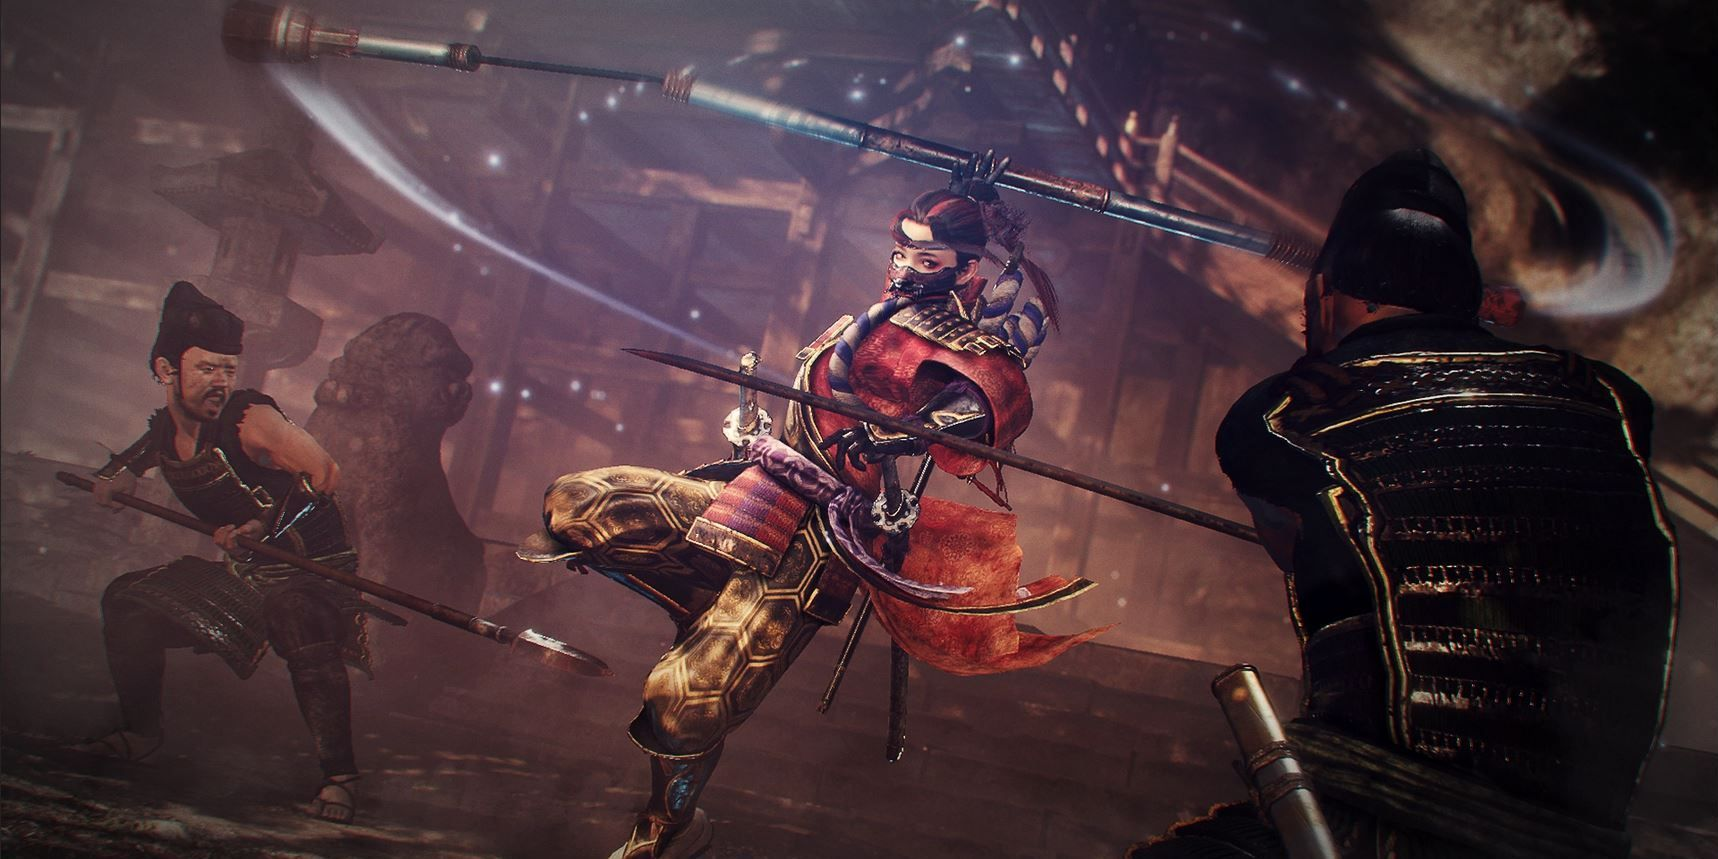 Nioh 2 Darkness In The Capital DLC Releases In October